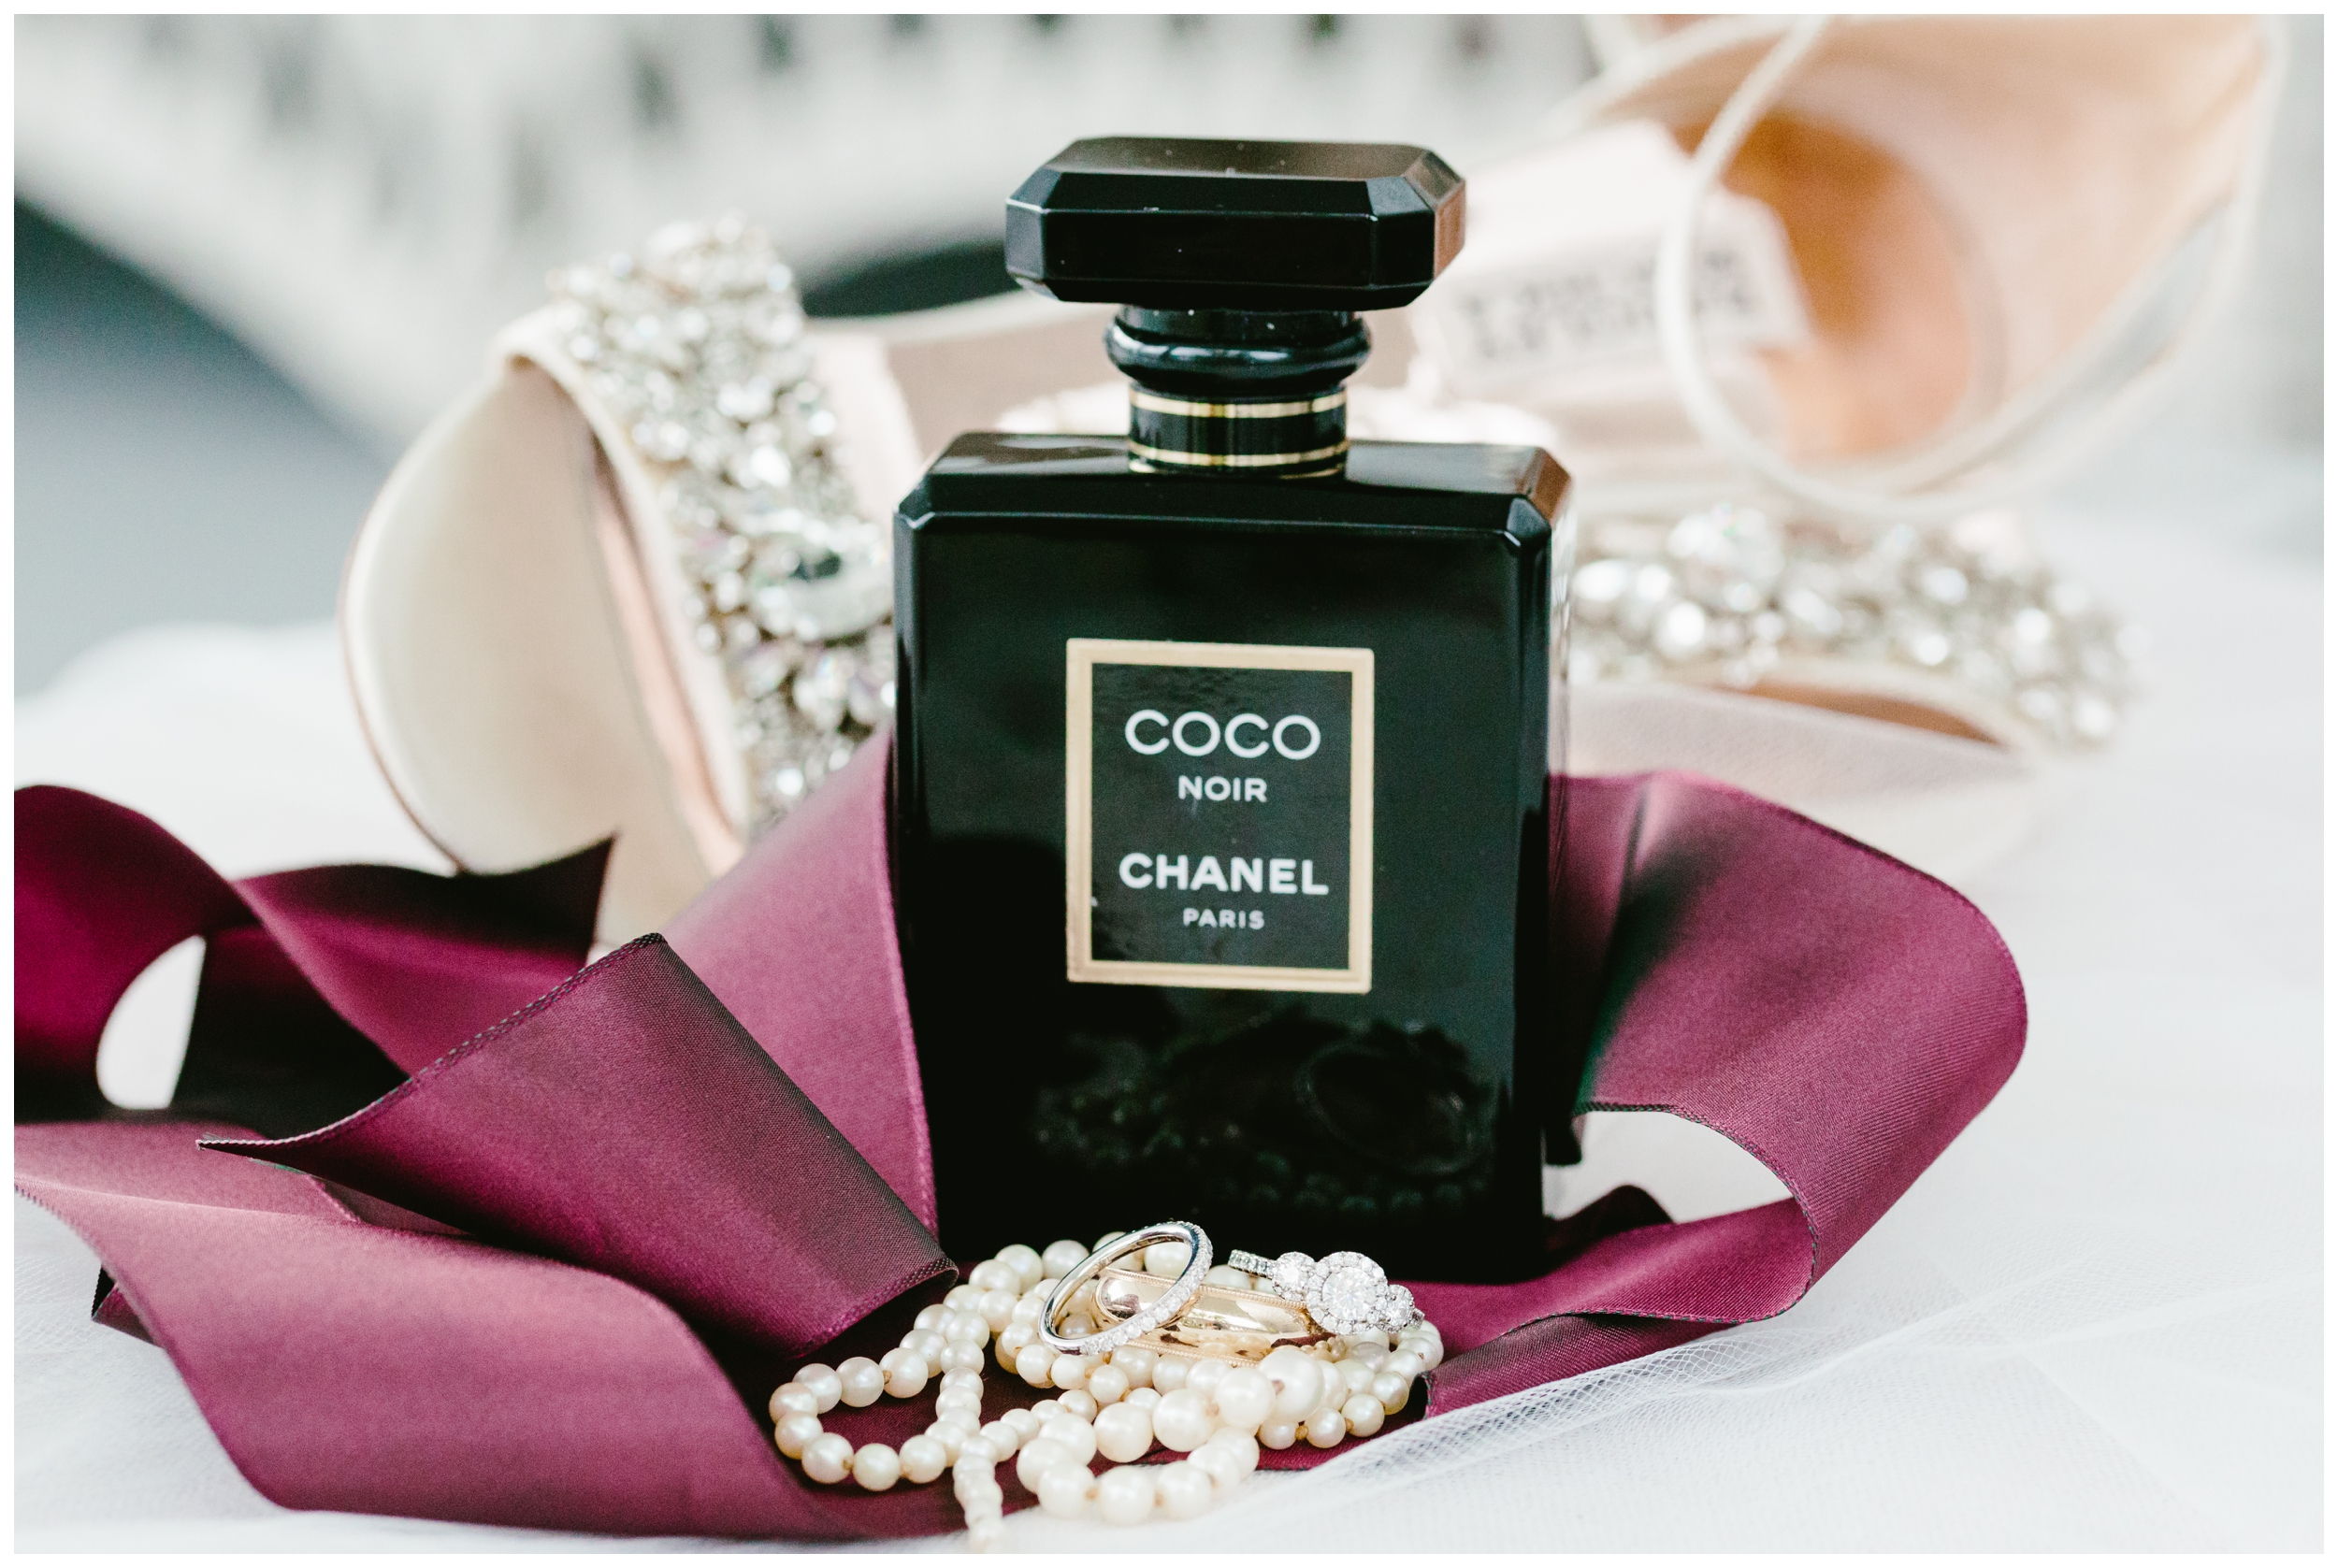 The bride's scent for her wedding day was Coco Chanel Noir.